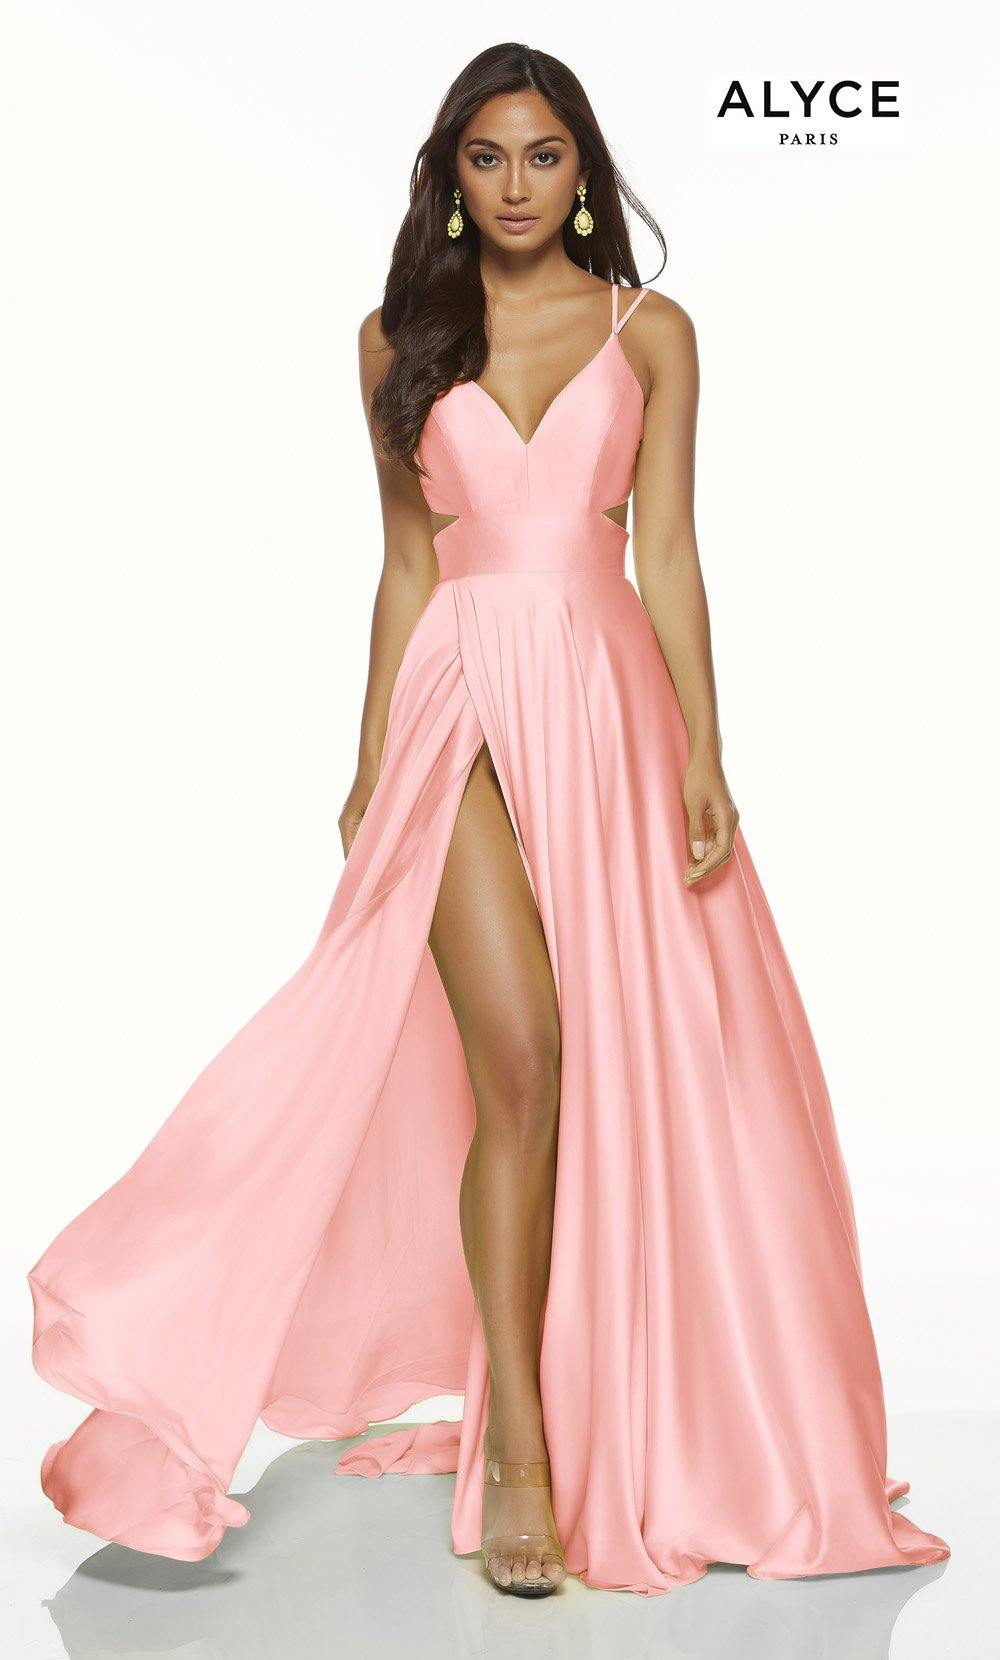 Blush Pink flowy satin chiffon prom dress with a V neck, side cutouts, and front slit